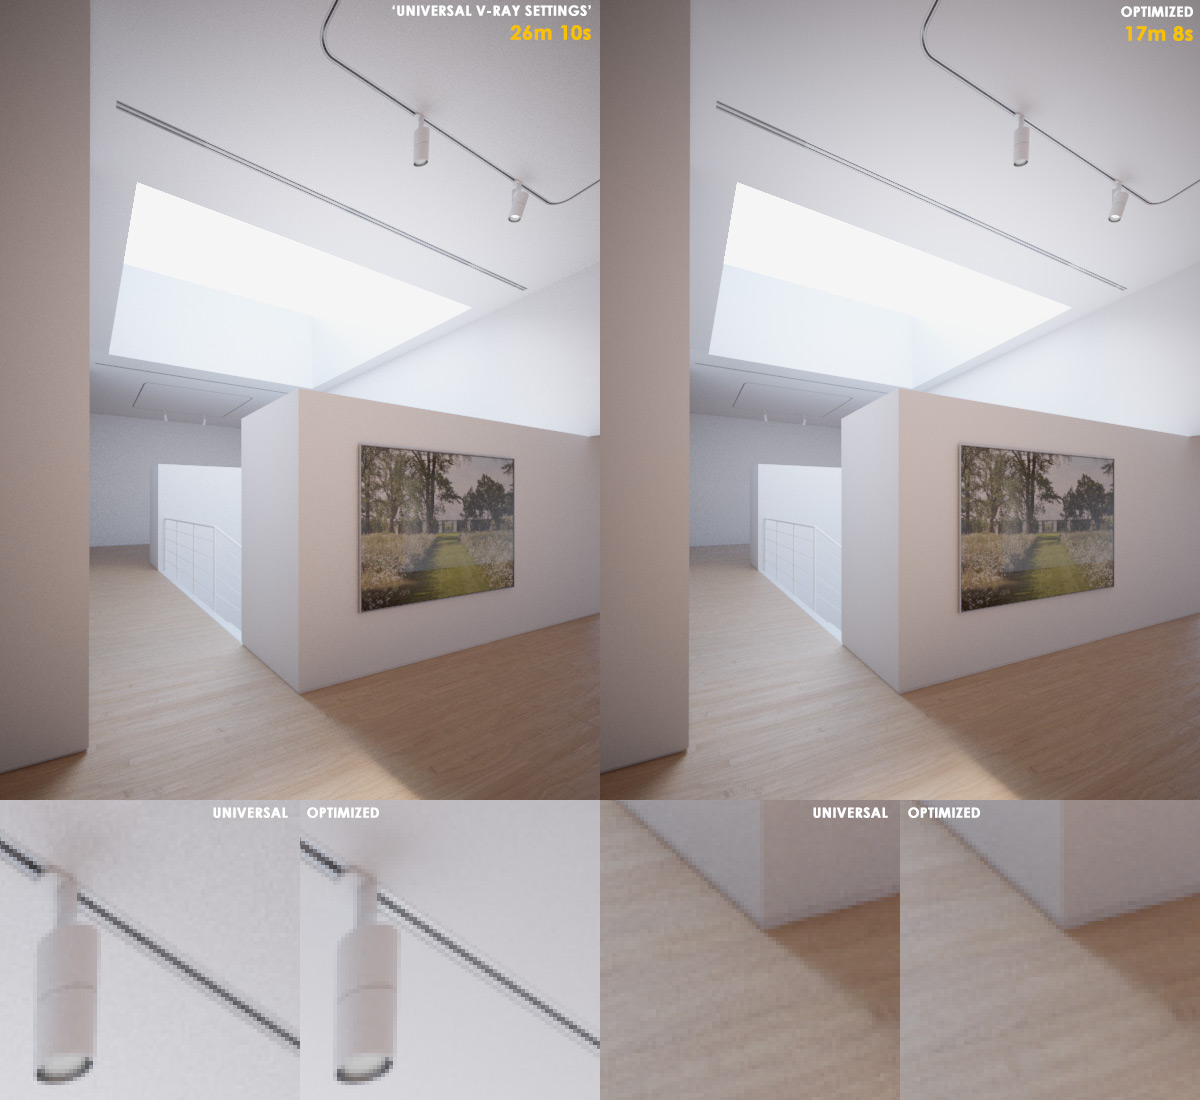 V ray render optimization akin bilgic for Vray interior lighting rendering tutorial